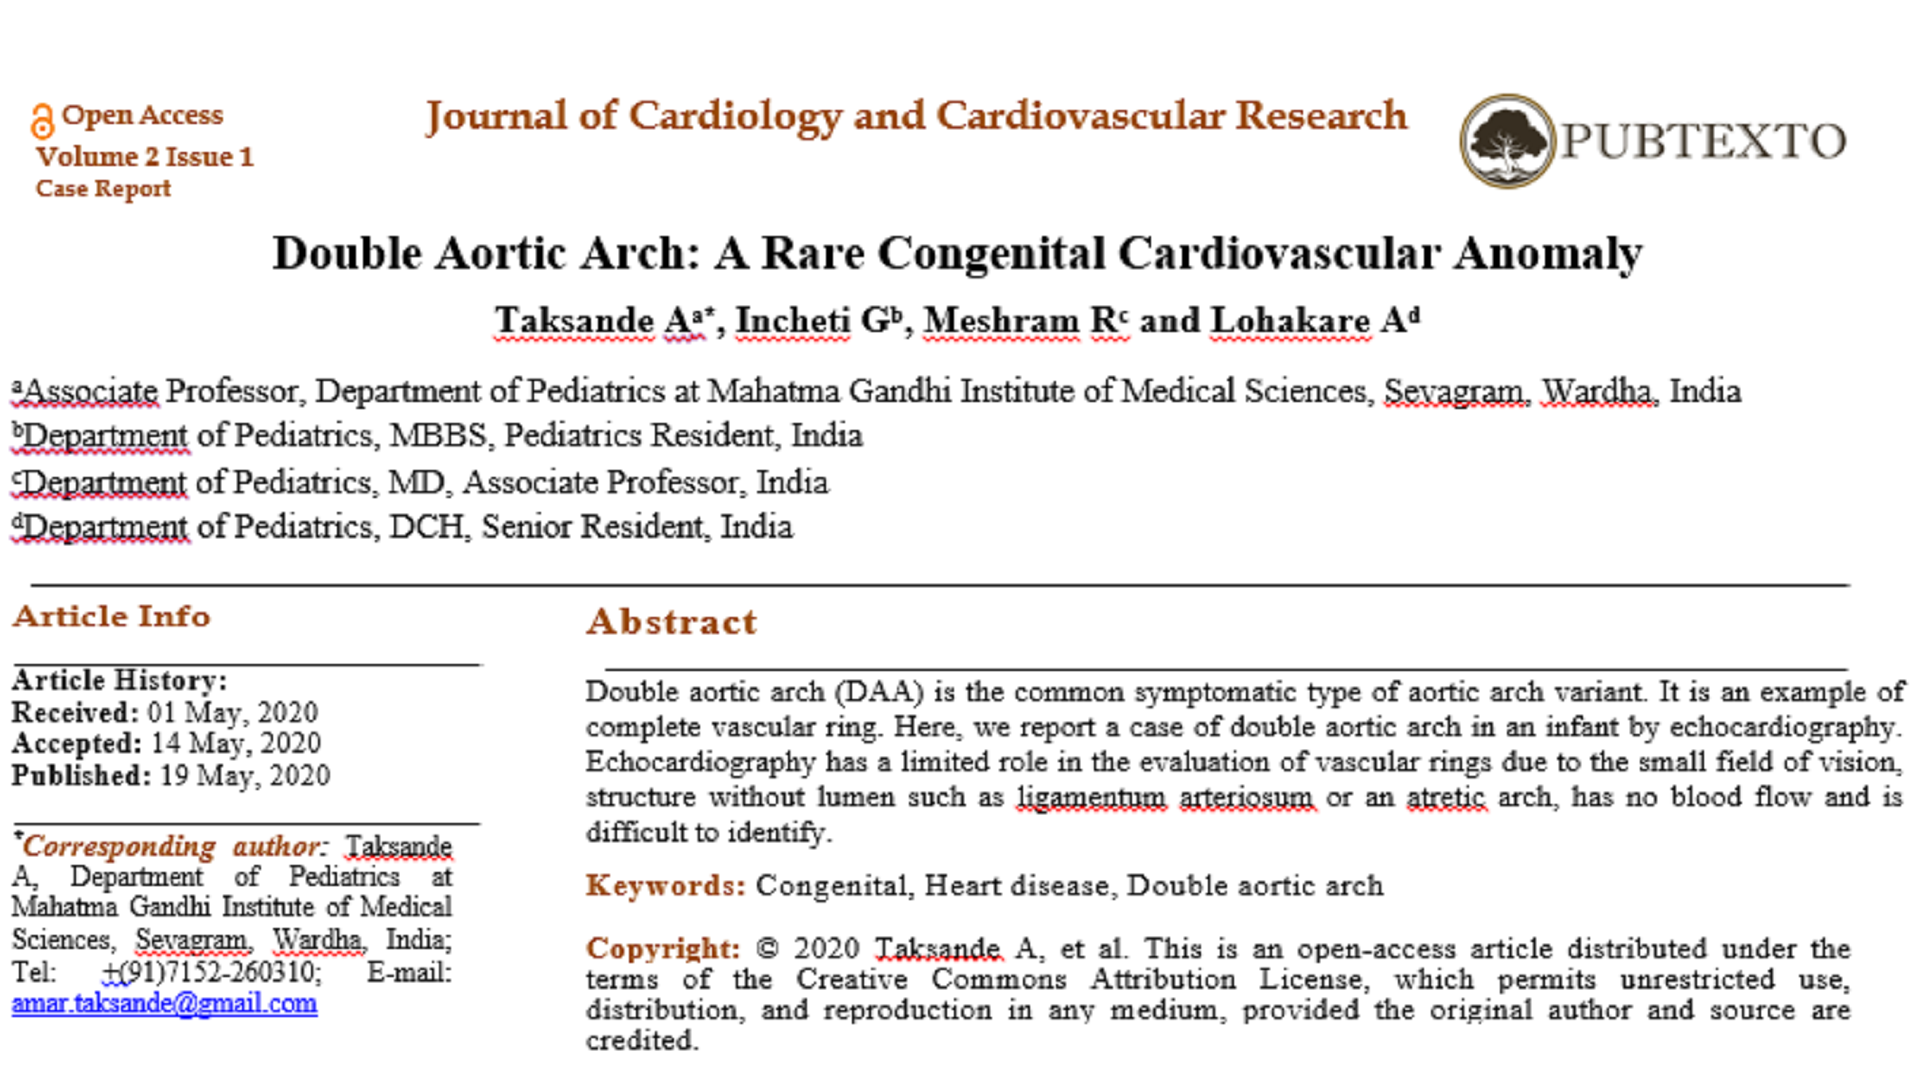 Double Aortic Arch: A Rare Congenital Cardiovascular Anomaly